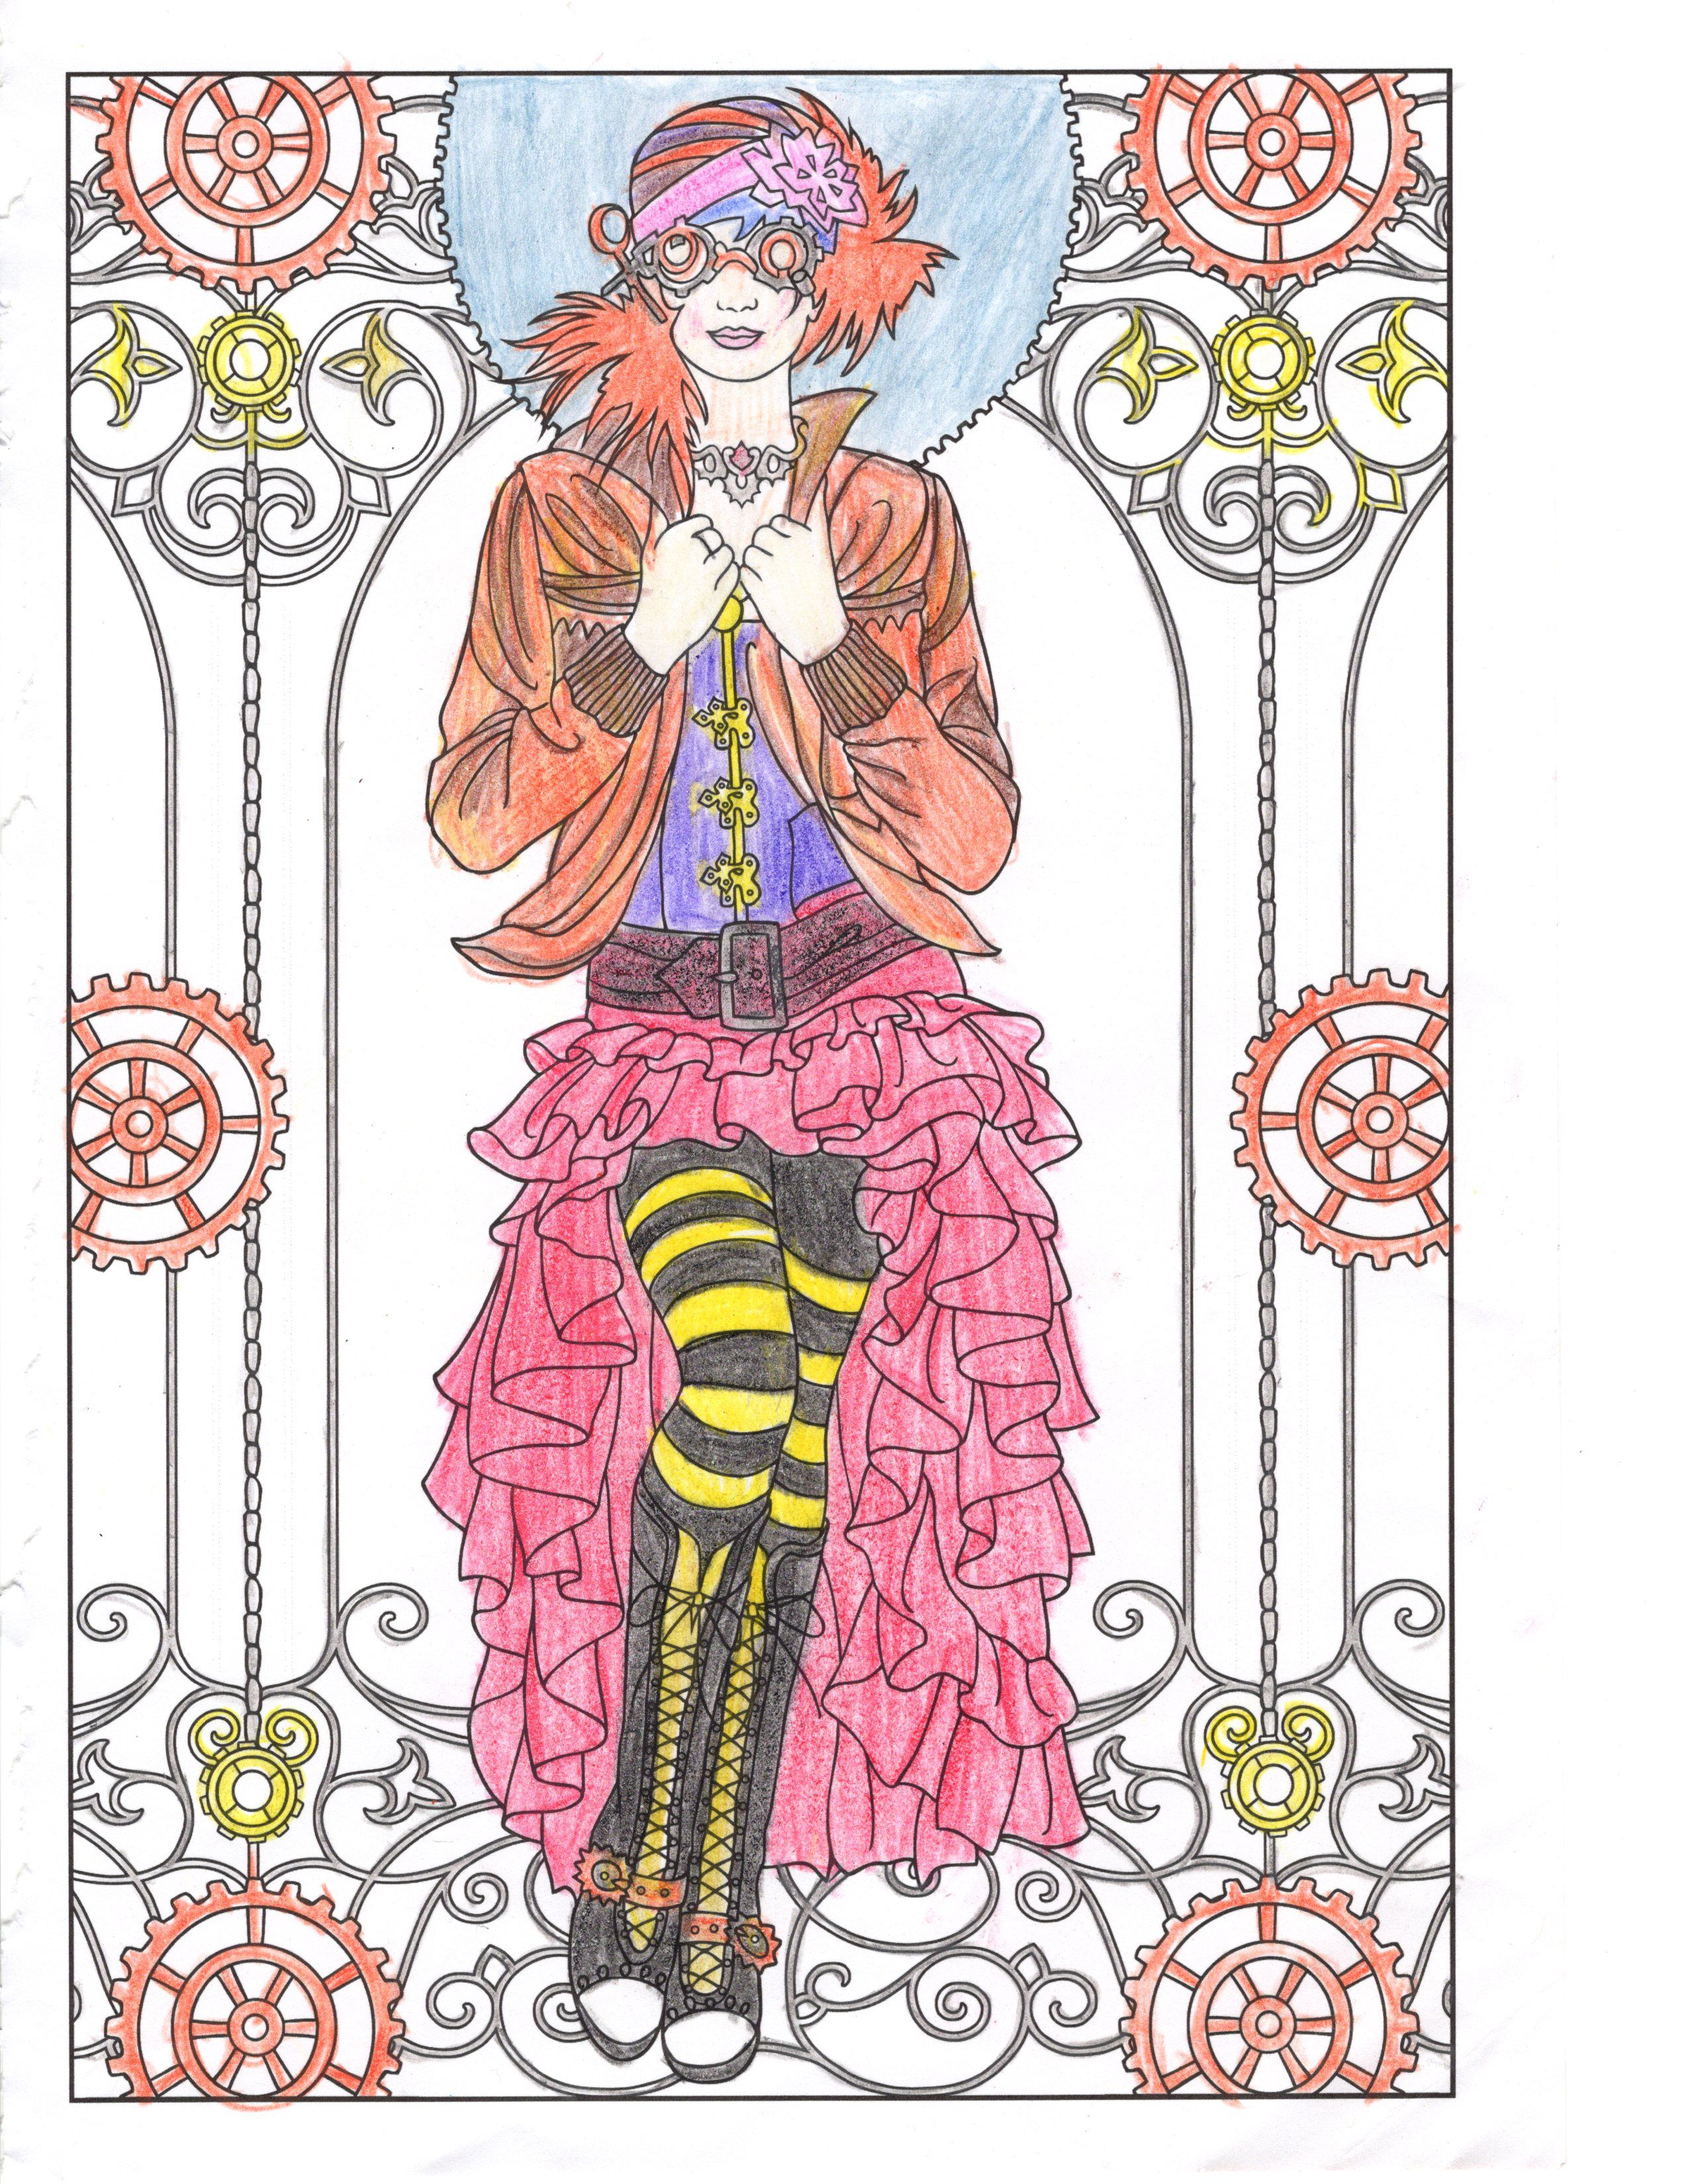 Steam Punk Coloring book | Coloring pages | Pinterest | Steam punk ...